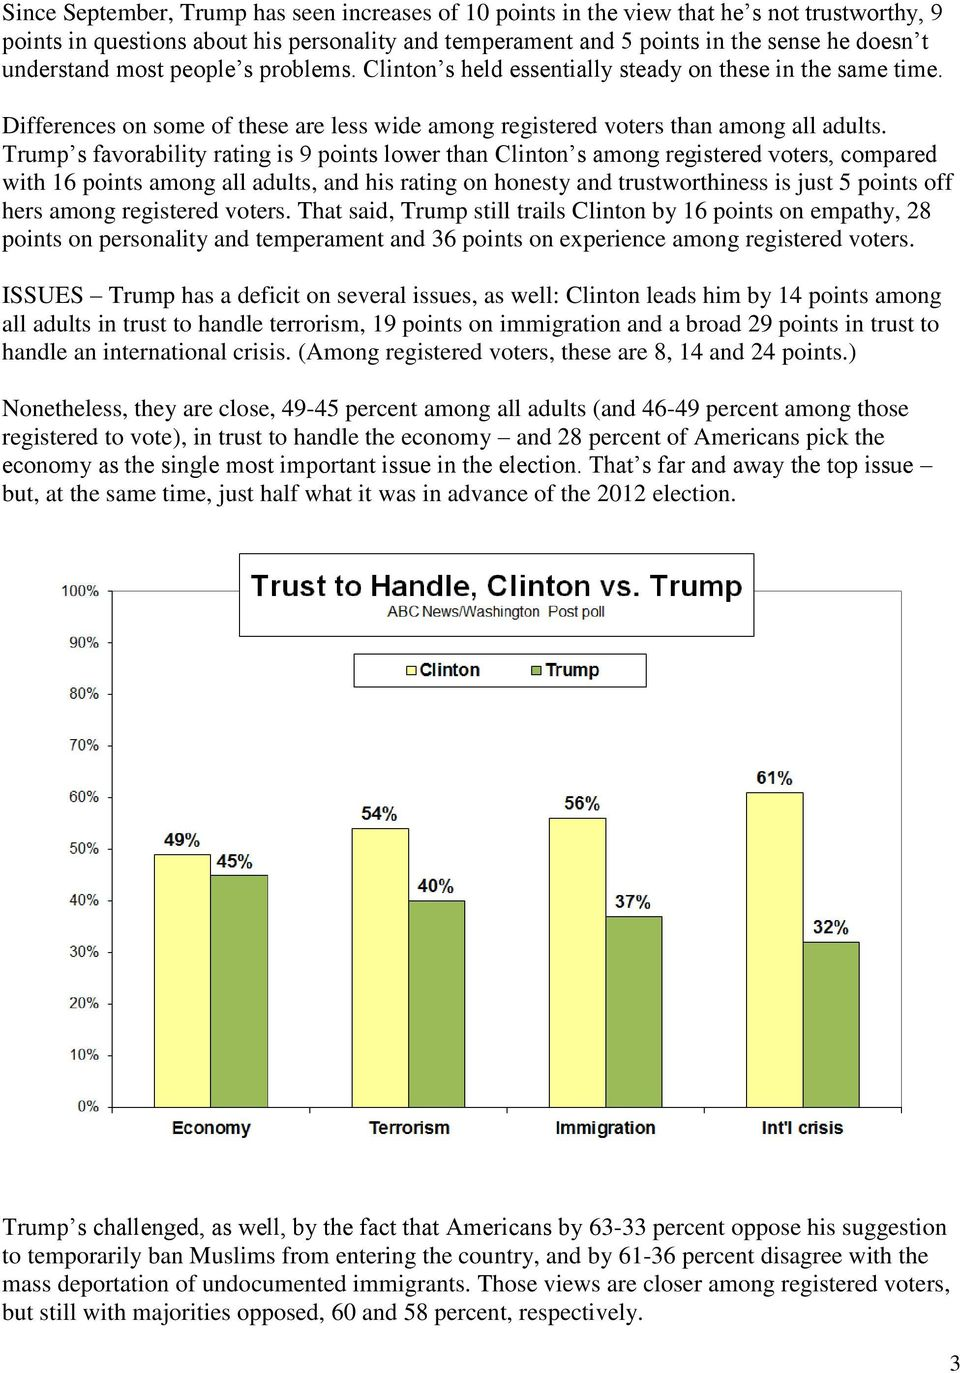 Trump s favorability rating is 9 points lower than Clinton s among registered voters, compared with 16 points among all adults, and his rating on honesty and trustworthiness is just 5 points off hers